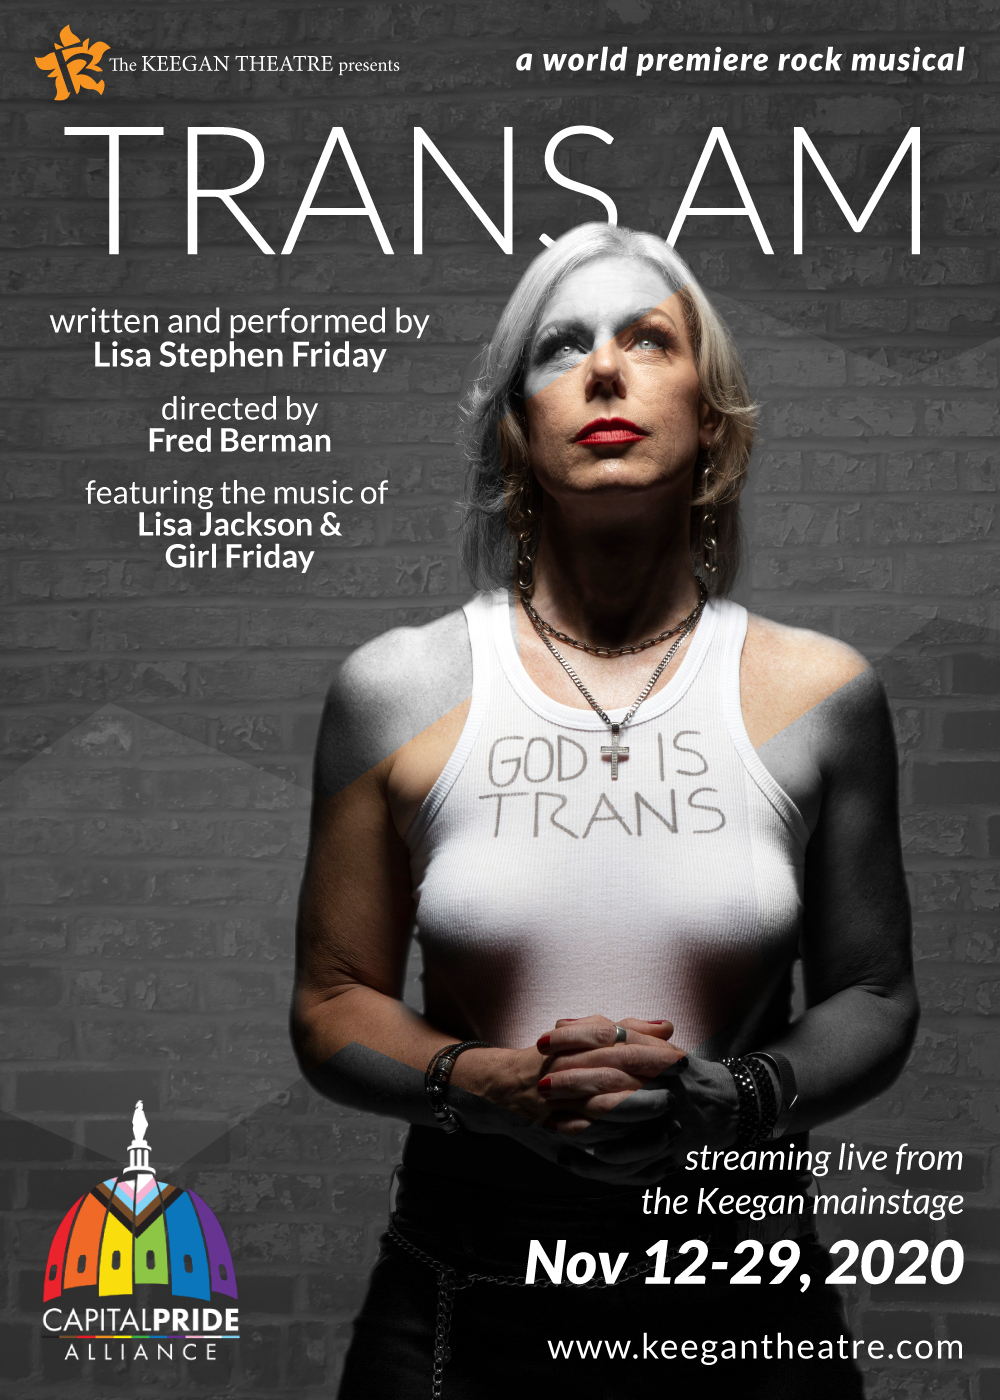 TRANS AM, by Lisa Stephen Friday, directed by Fred Berman. Photo by Ethan Hill.